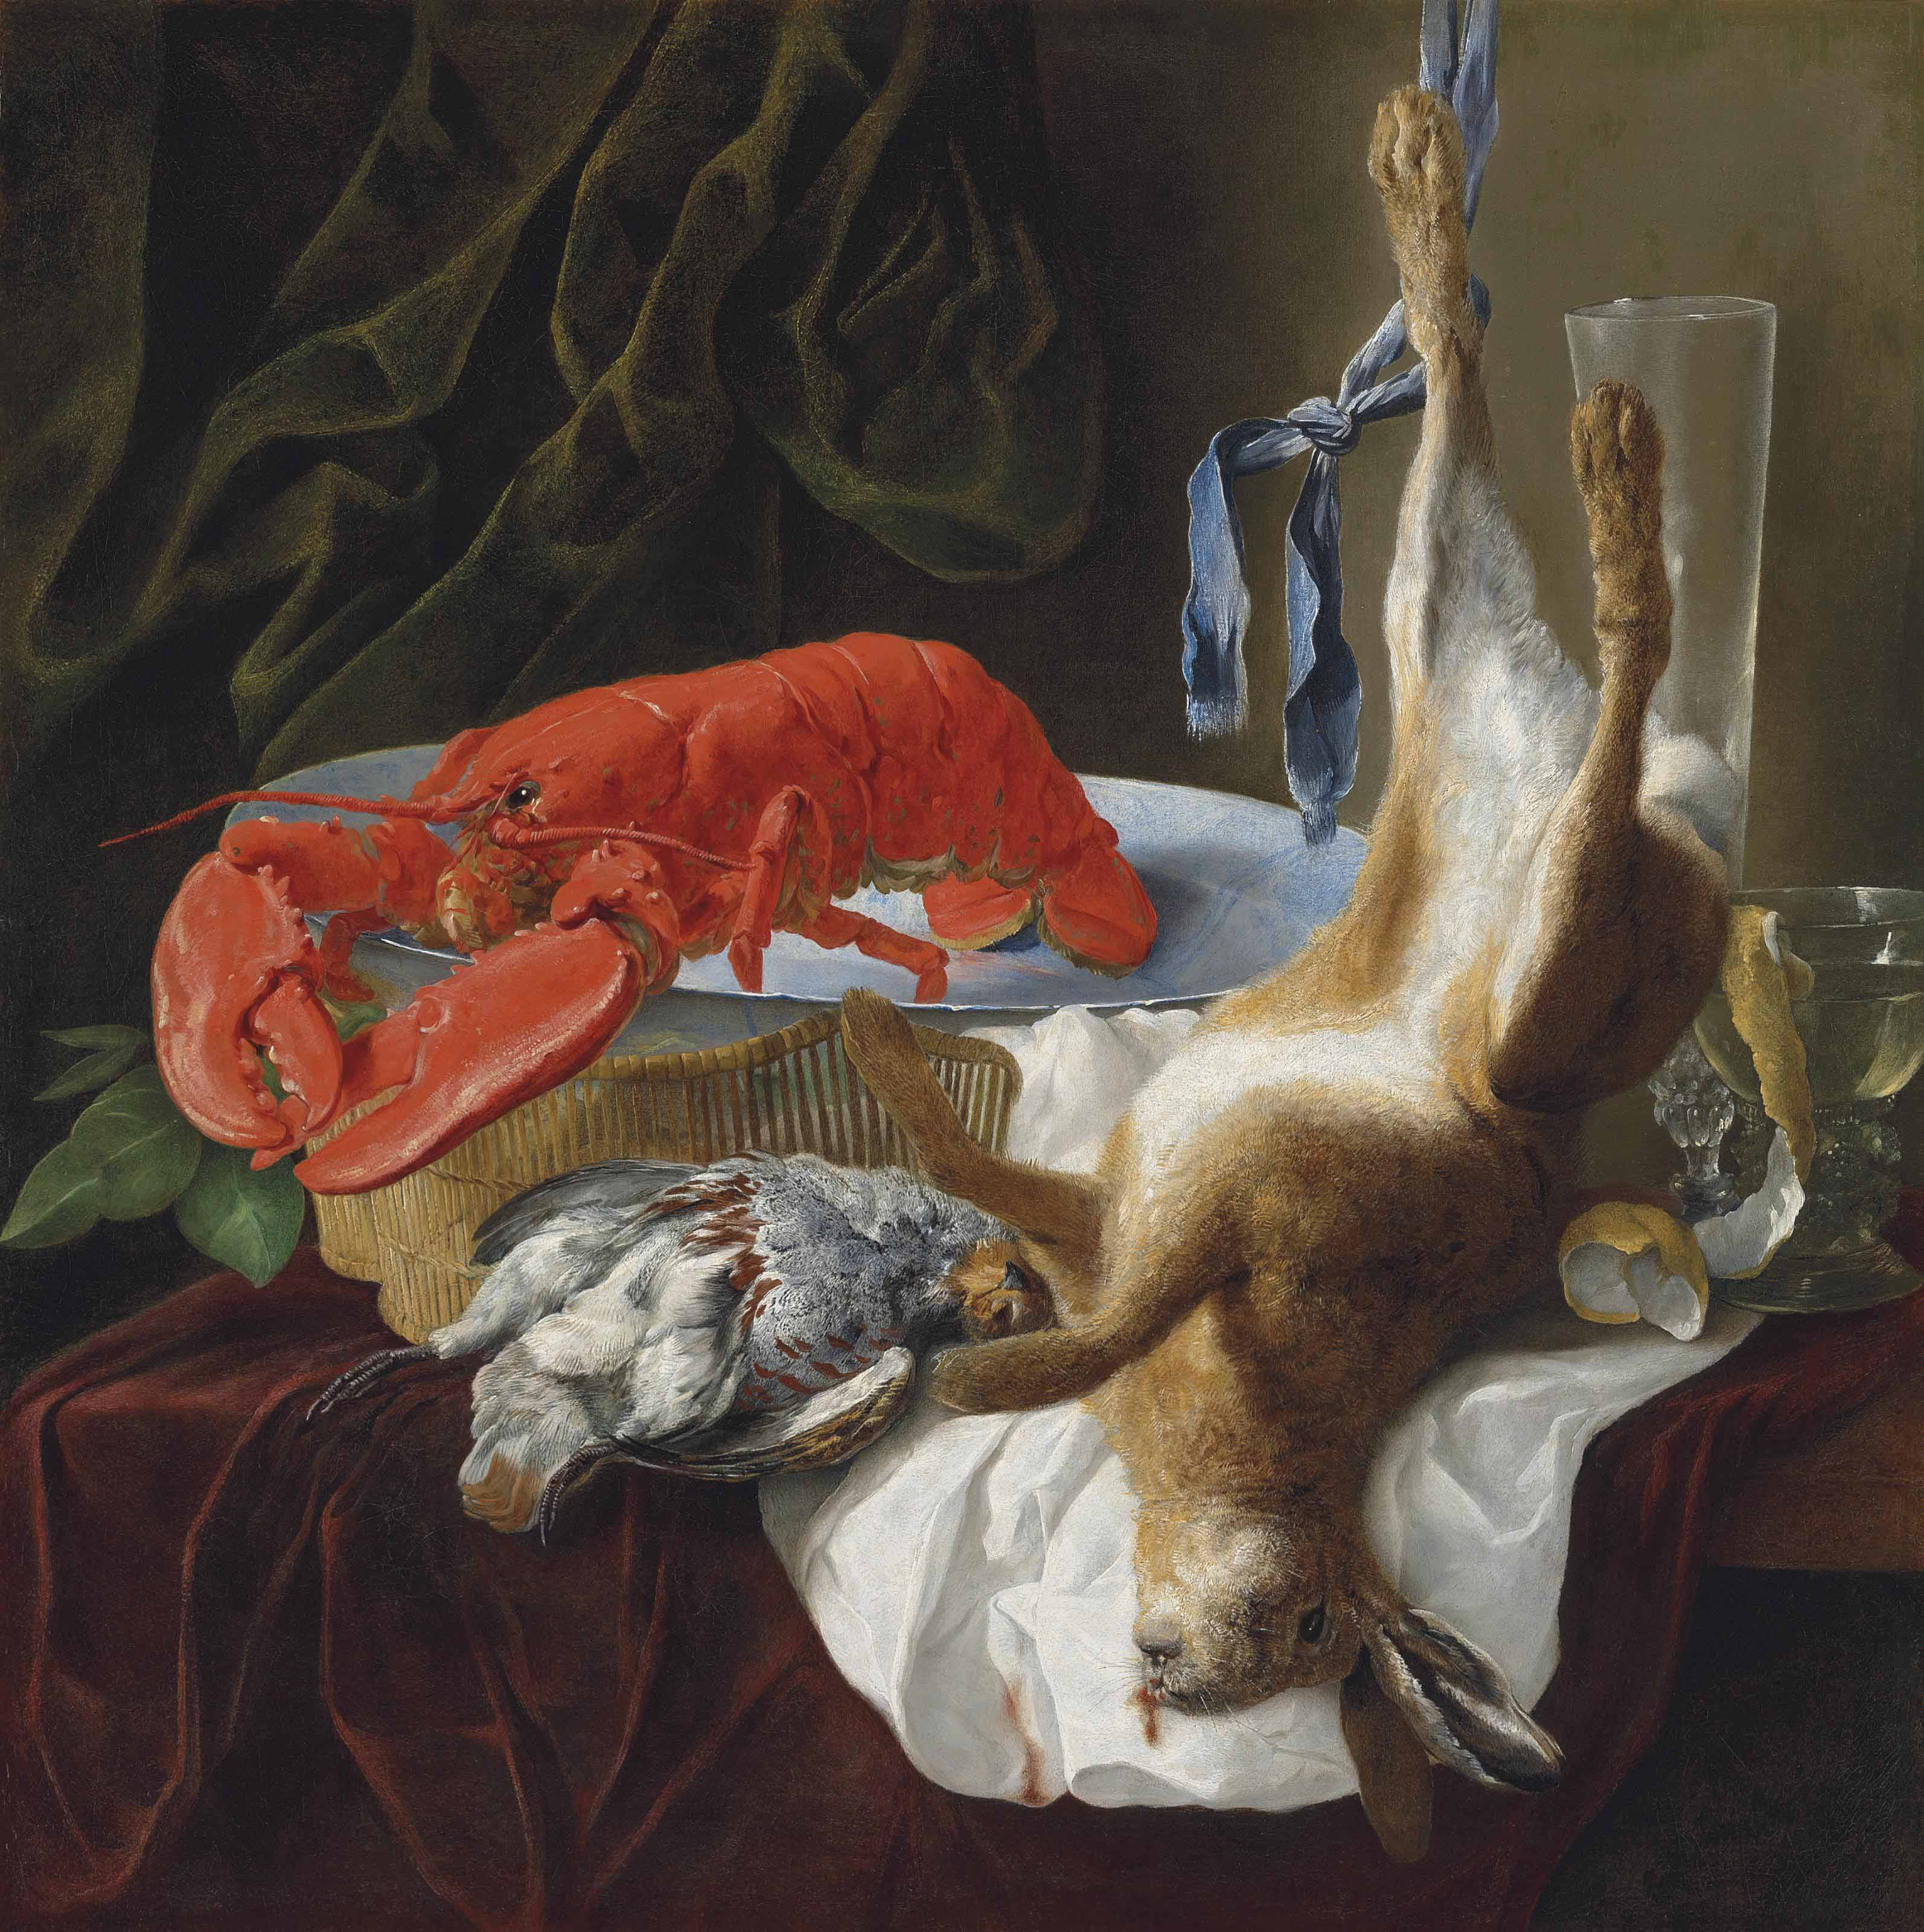 A hare, a partridge, a lobster and a partially peeled lemon in a roemer on a partly draped table, in an interior